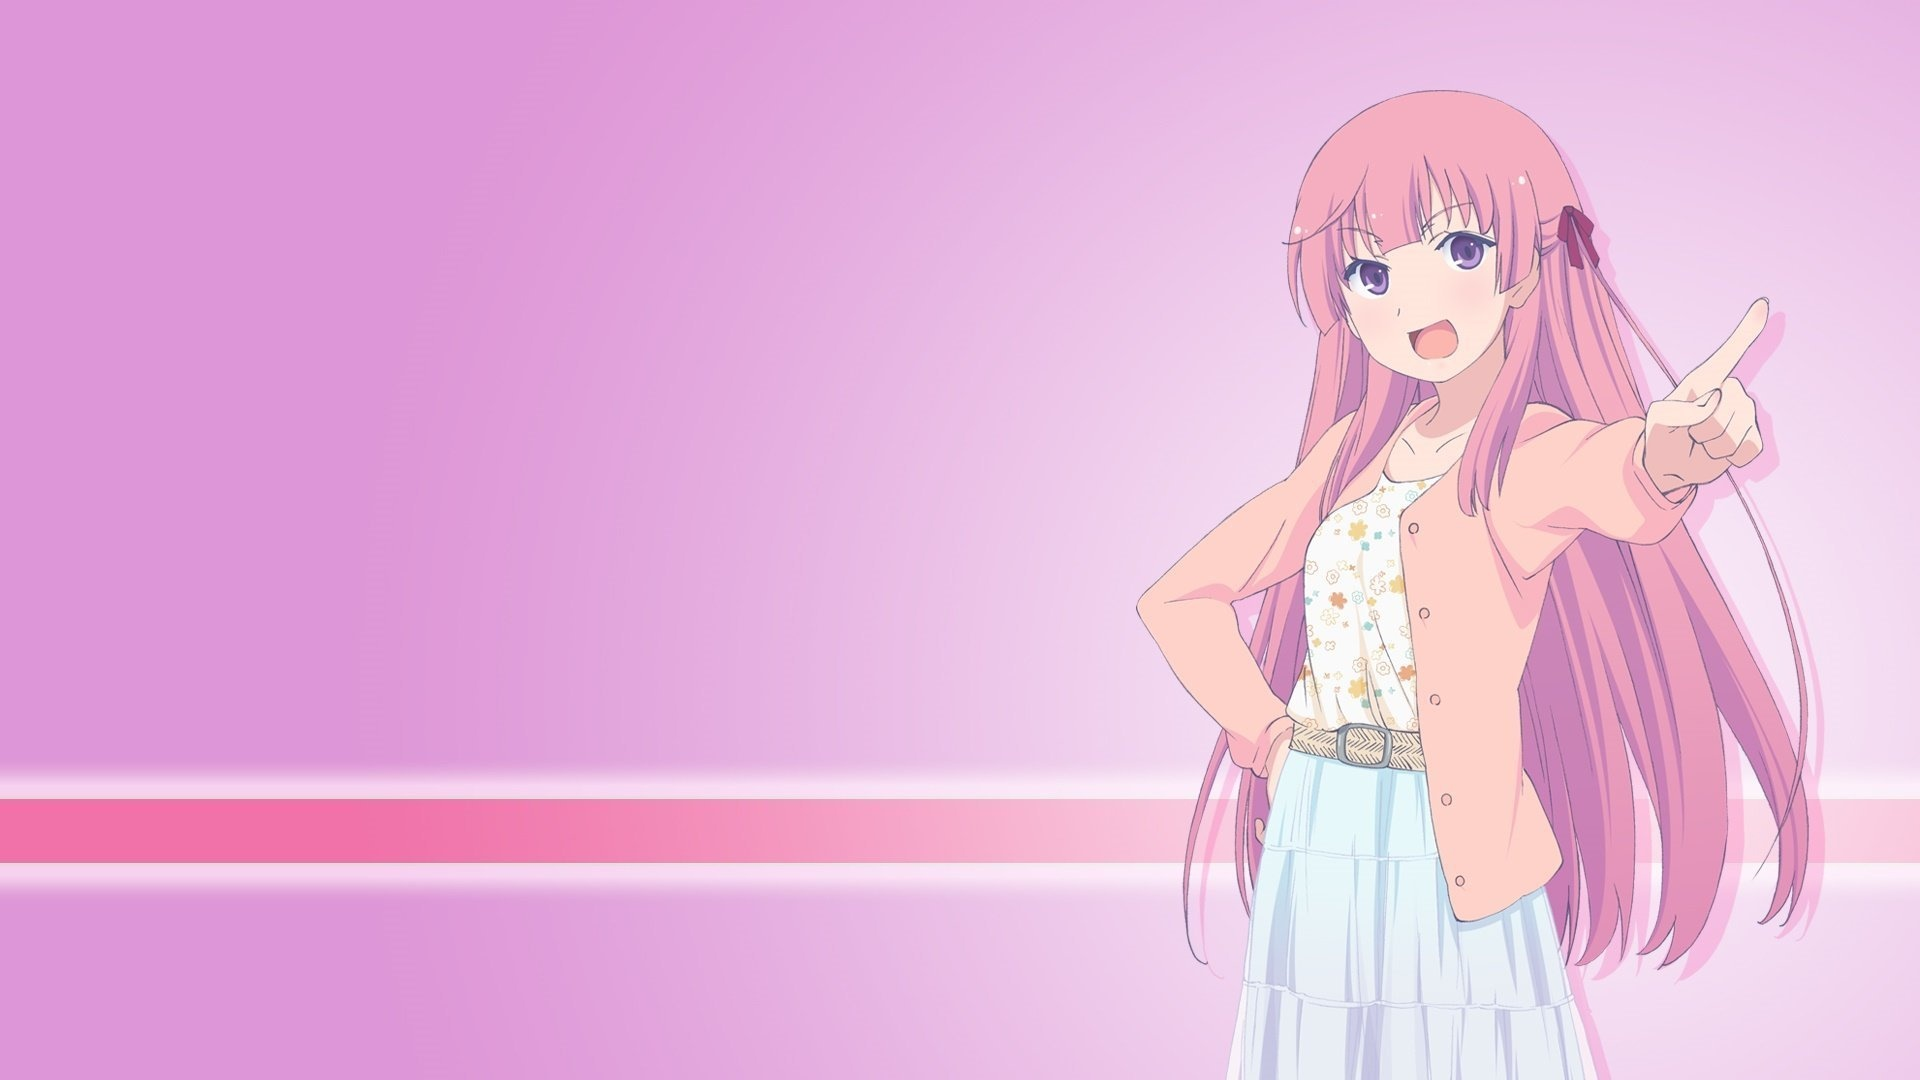 Anime Character windows background